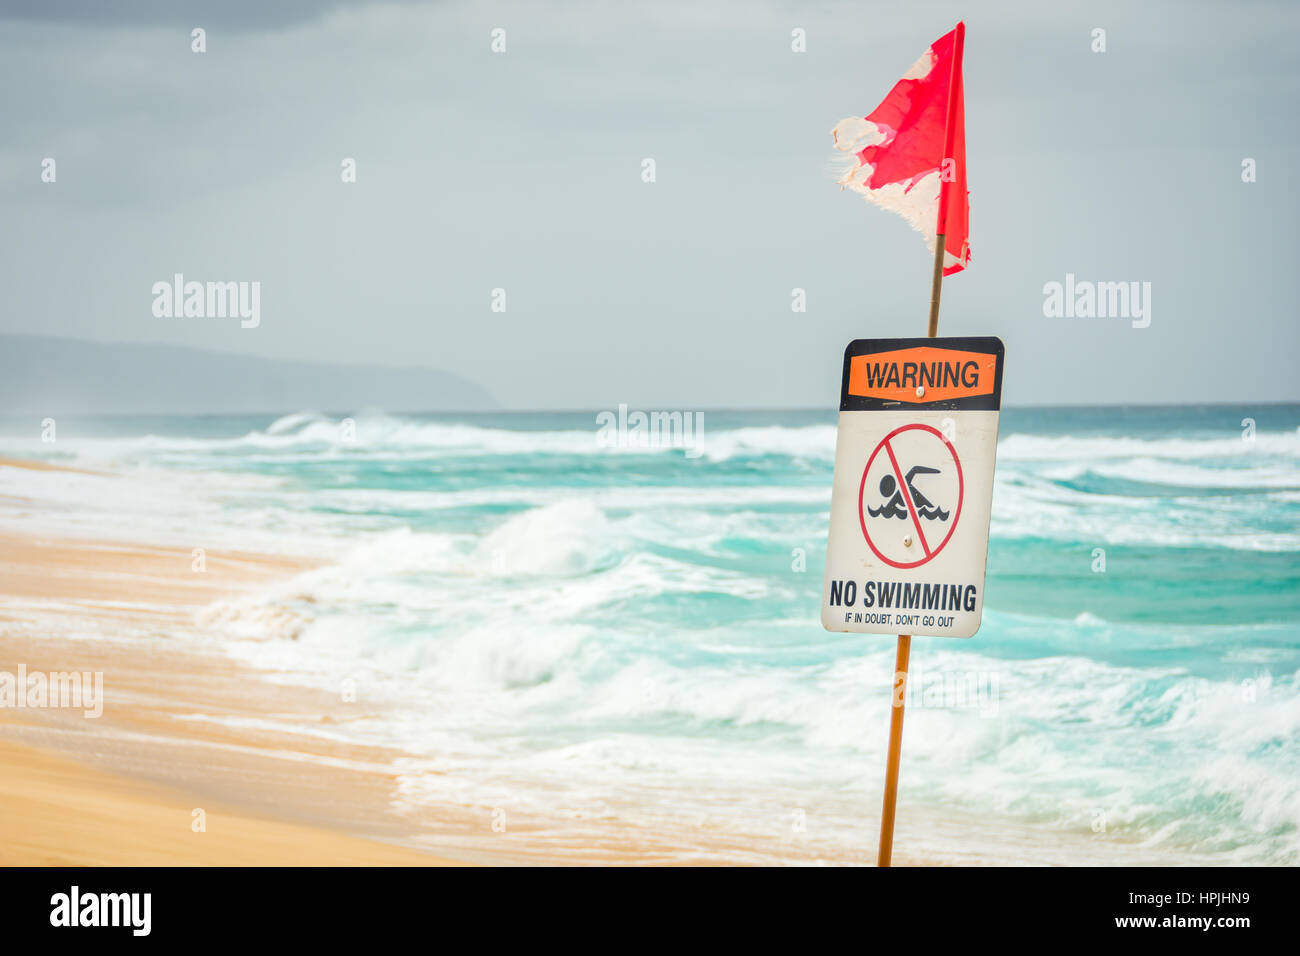 A warning sign indicating no swimming due to large, dangerous ocean waves. Stock Photo